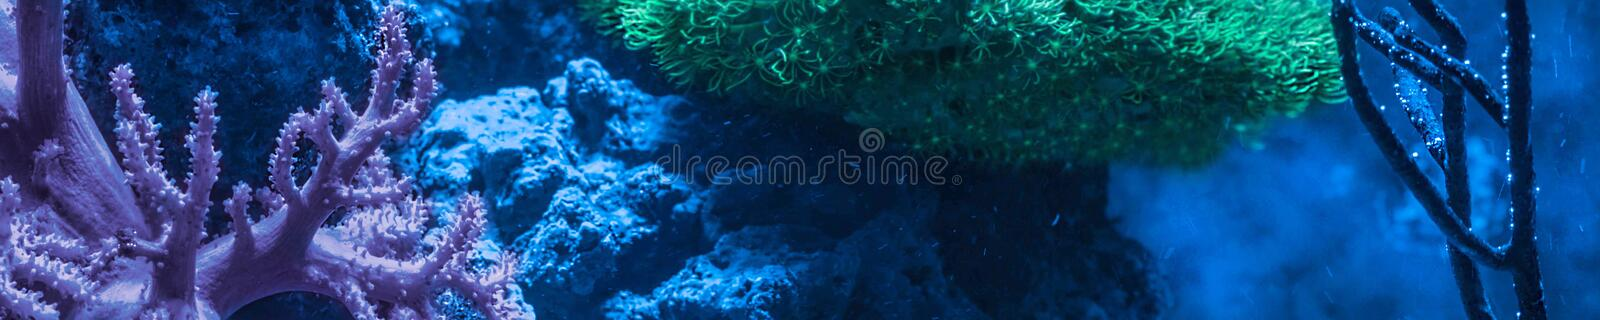 Reef tank, marine aquarium full of fishes and plants. Horizontal photo banner for website header. Tank filled with water for keeping live underwater animals stock images